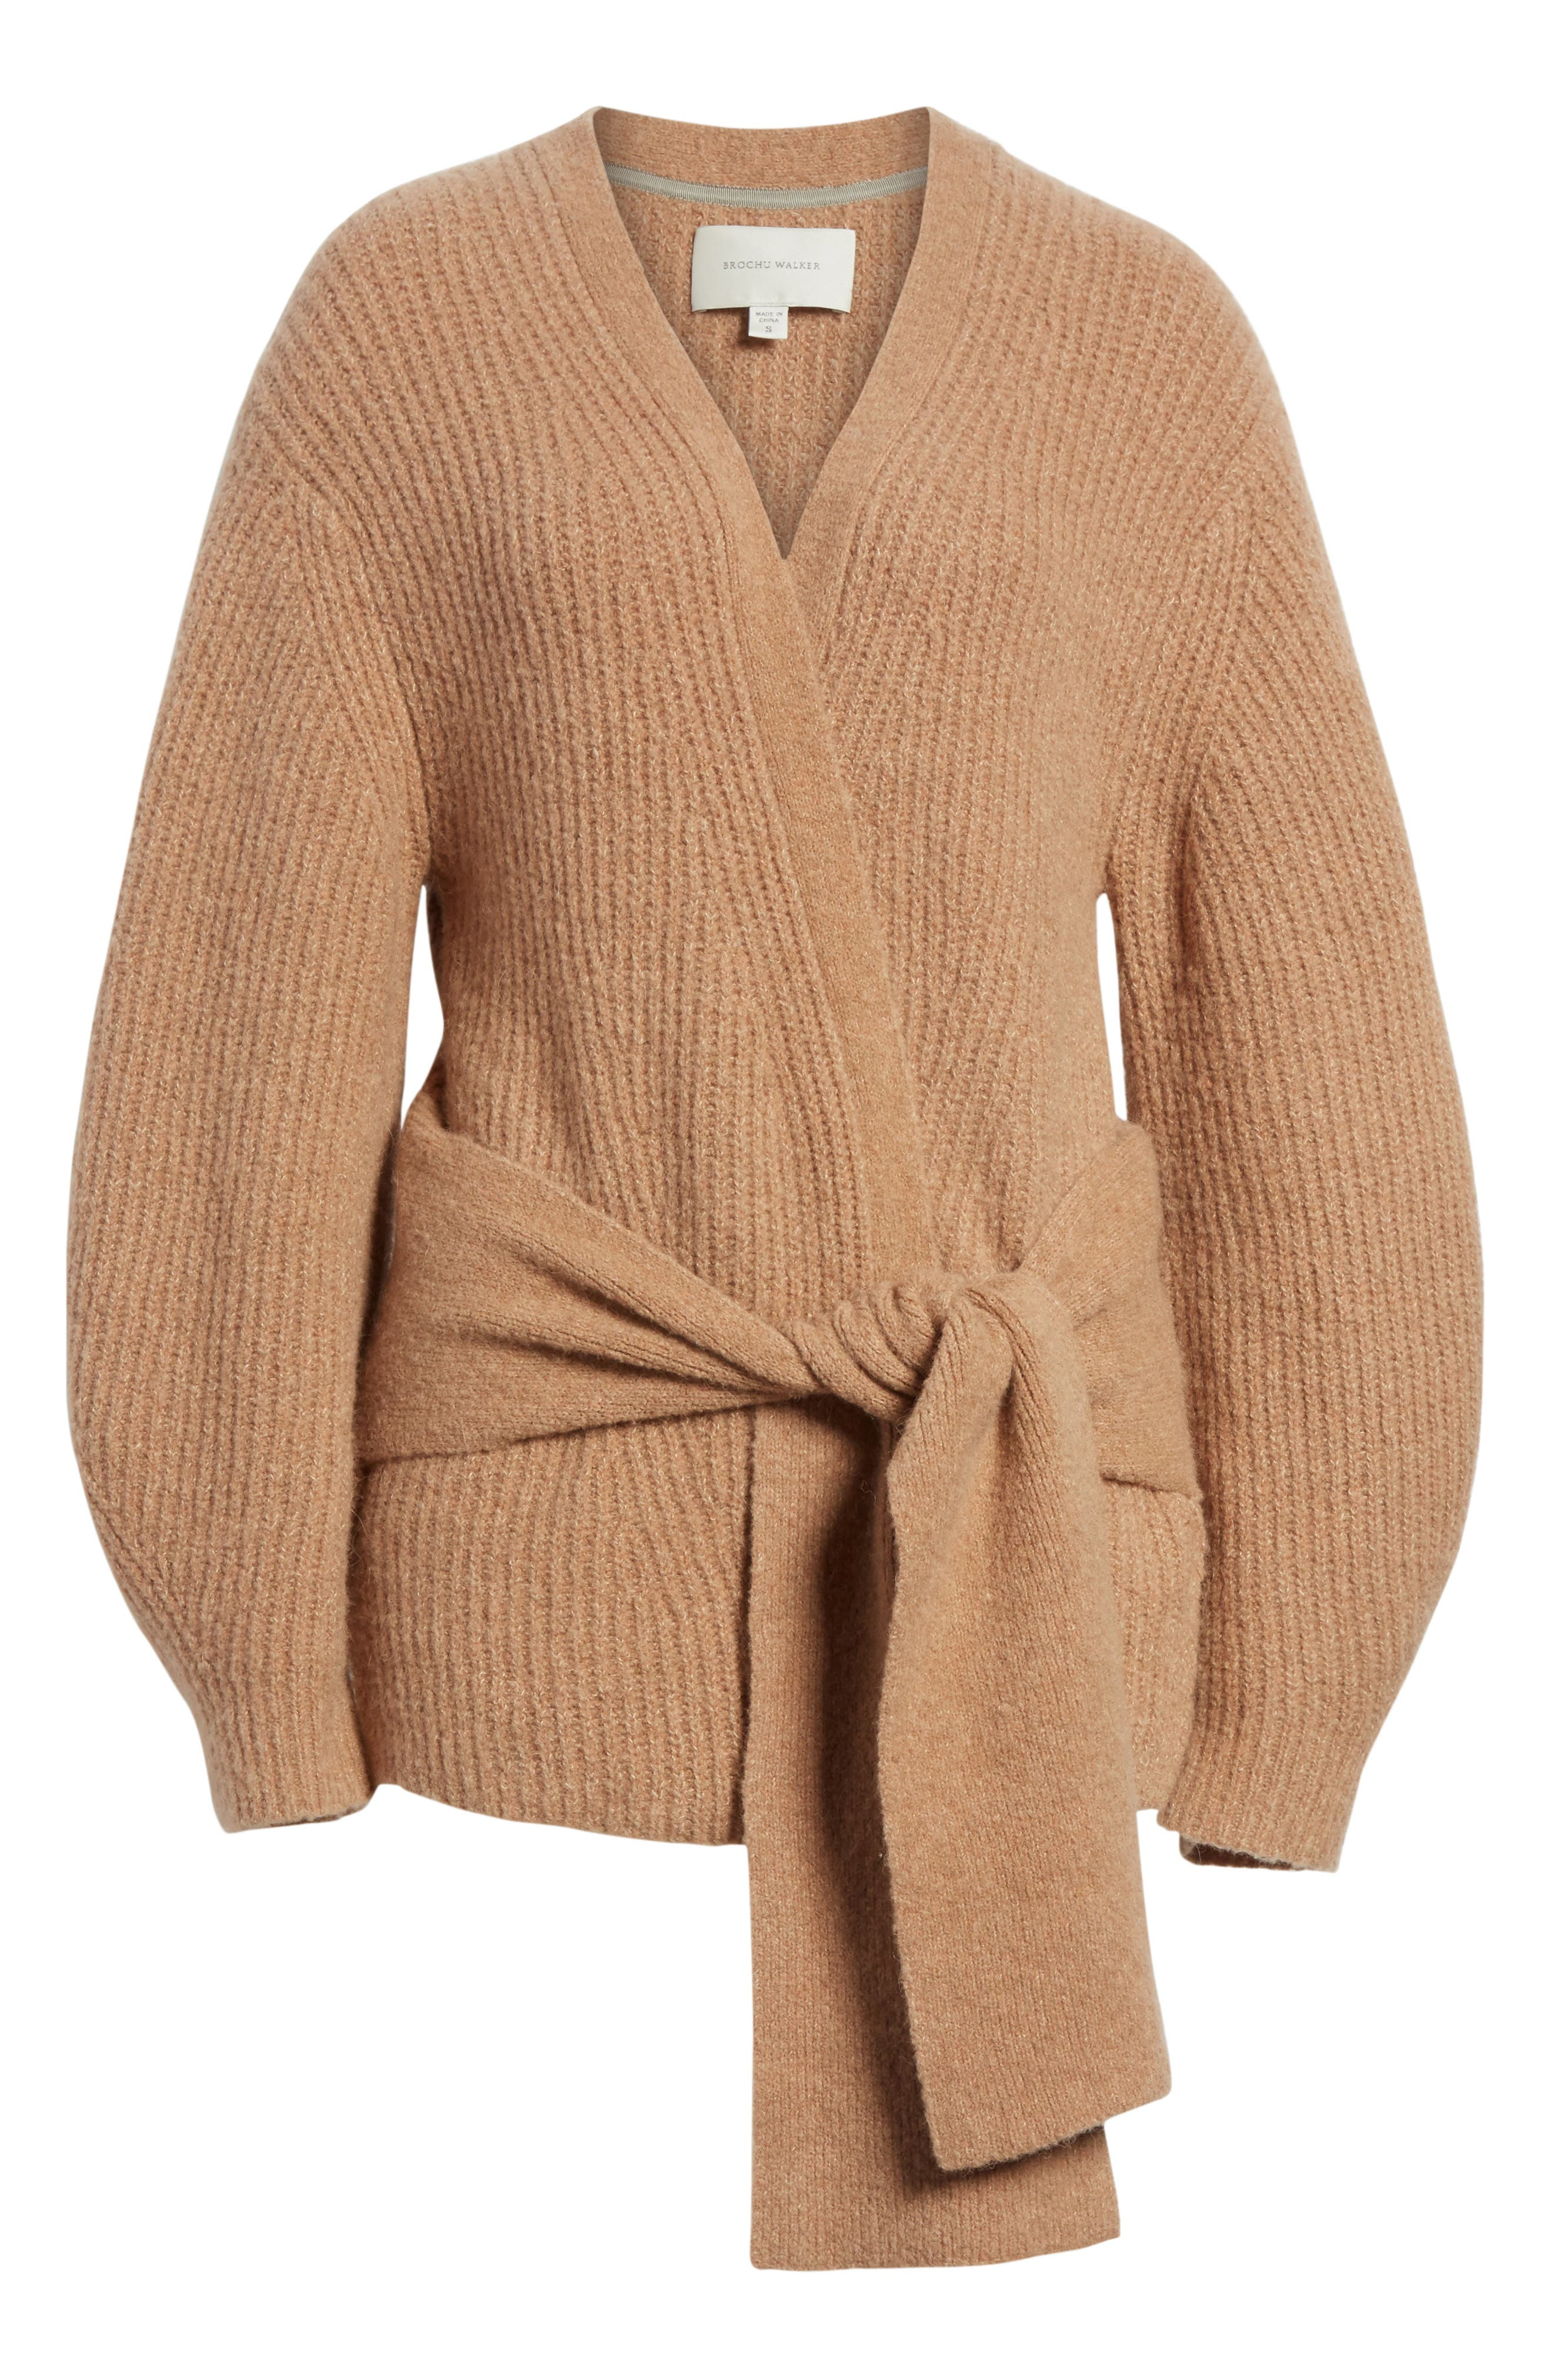 Hansen Belted Cardigan,                             Alternate thumbnail 6, color,                             020